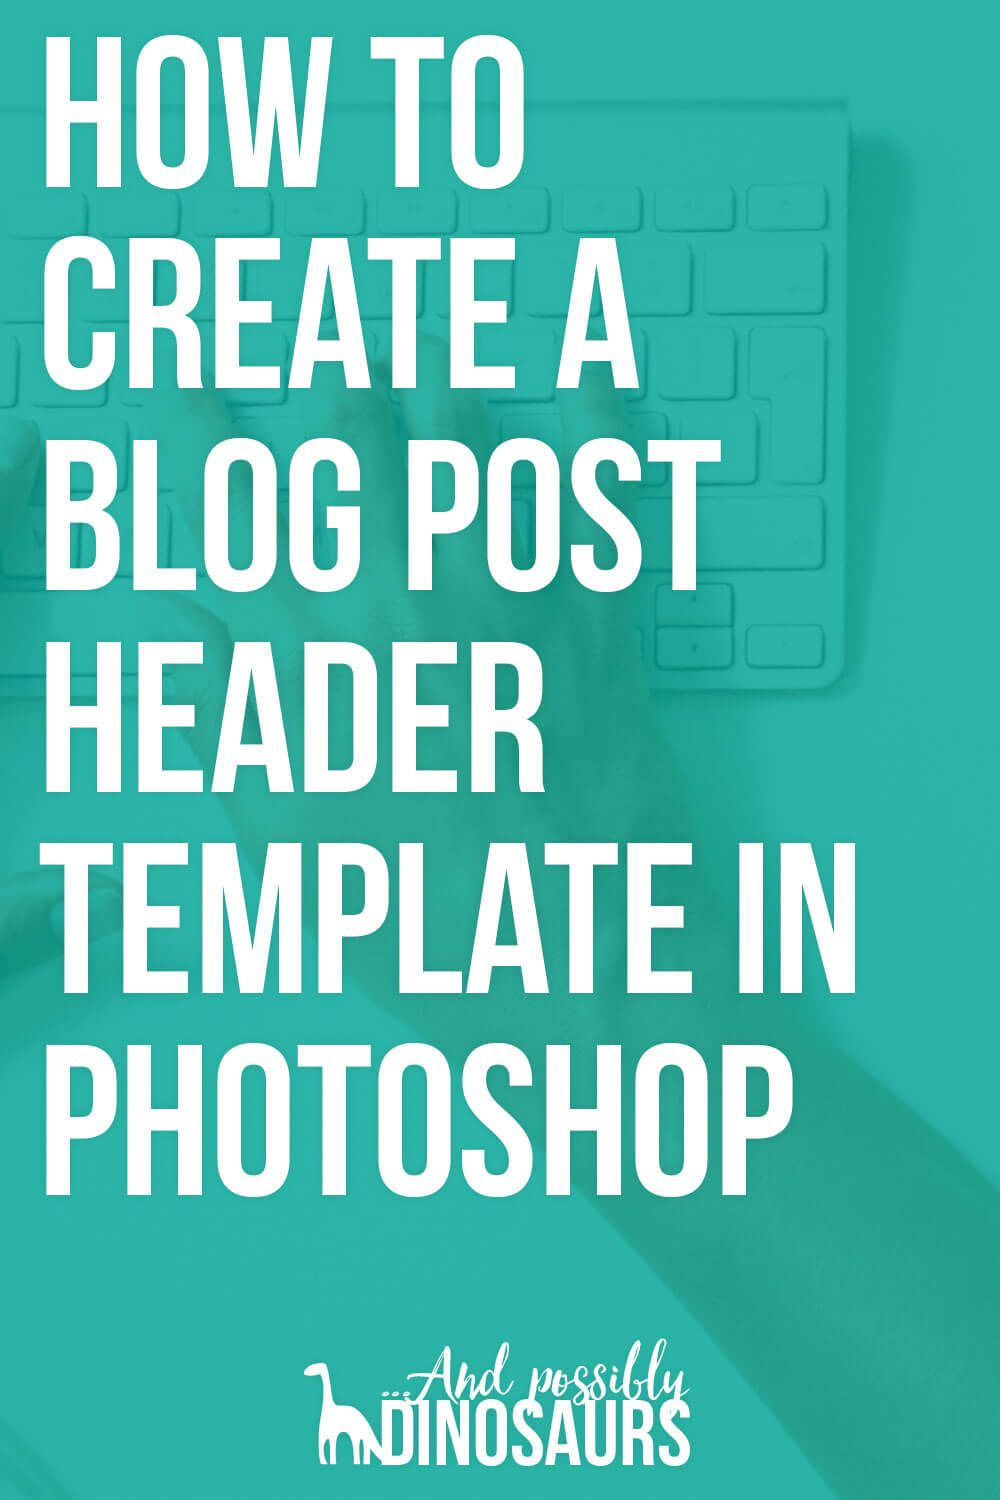 How to Create a Blog Post Header Template in Photoshop   Header ...